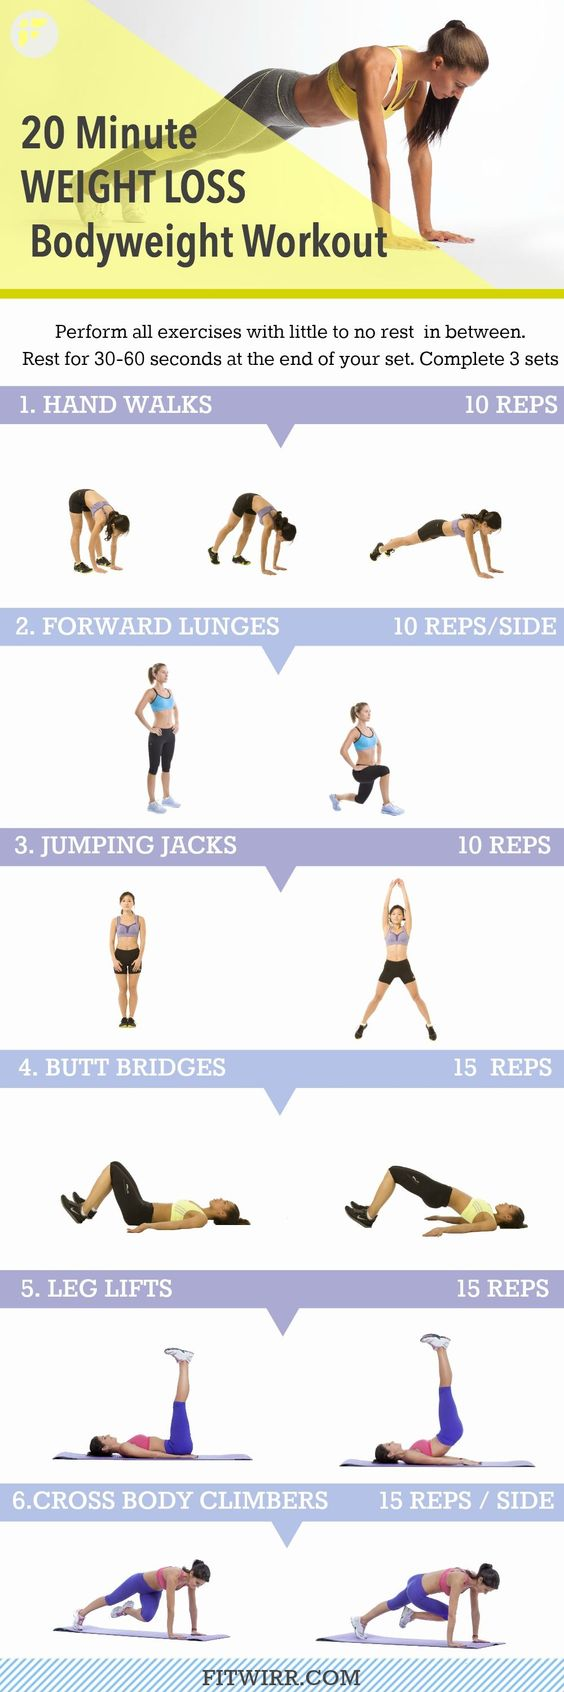 Weightloss Bodyweight Workout